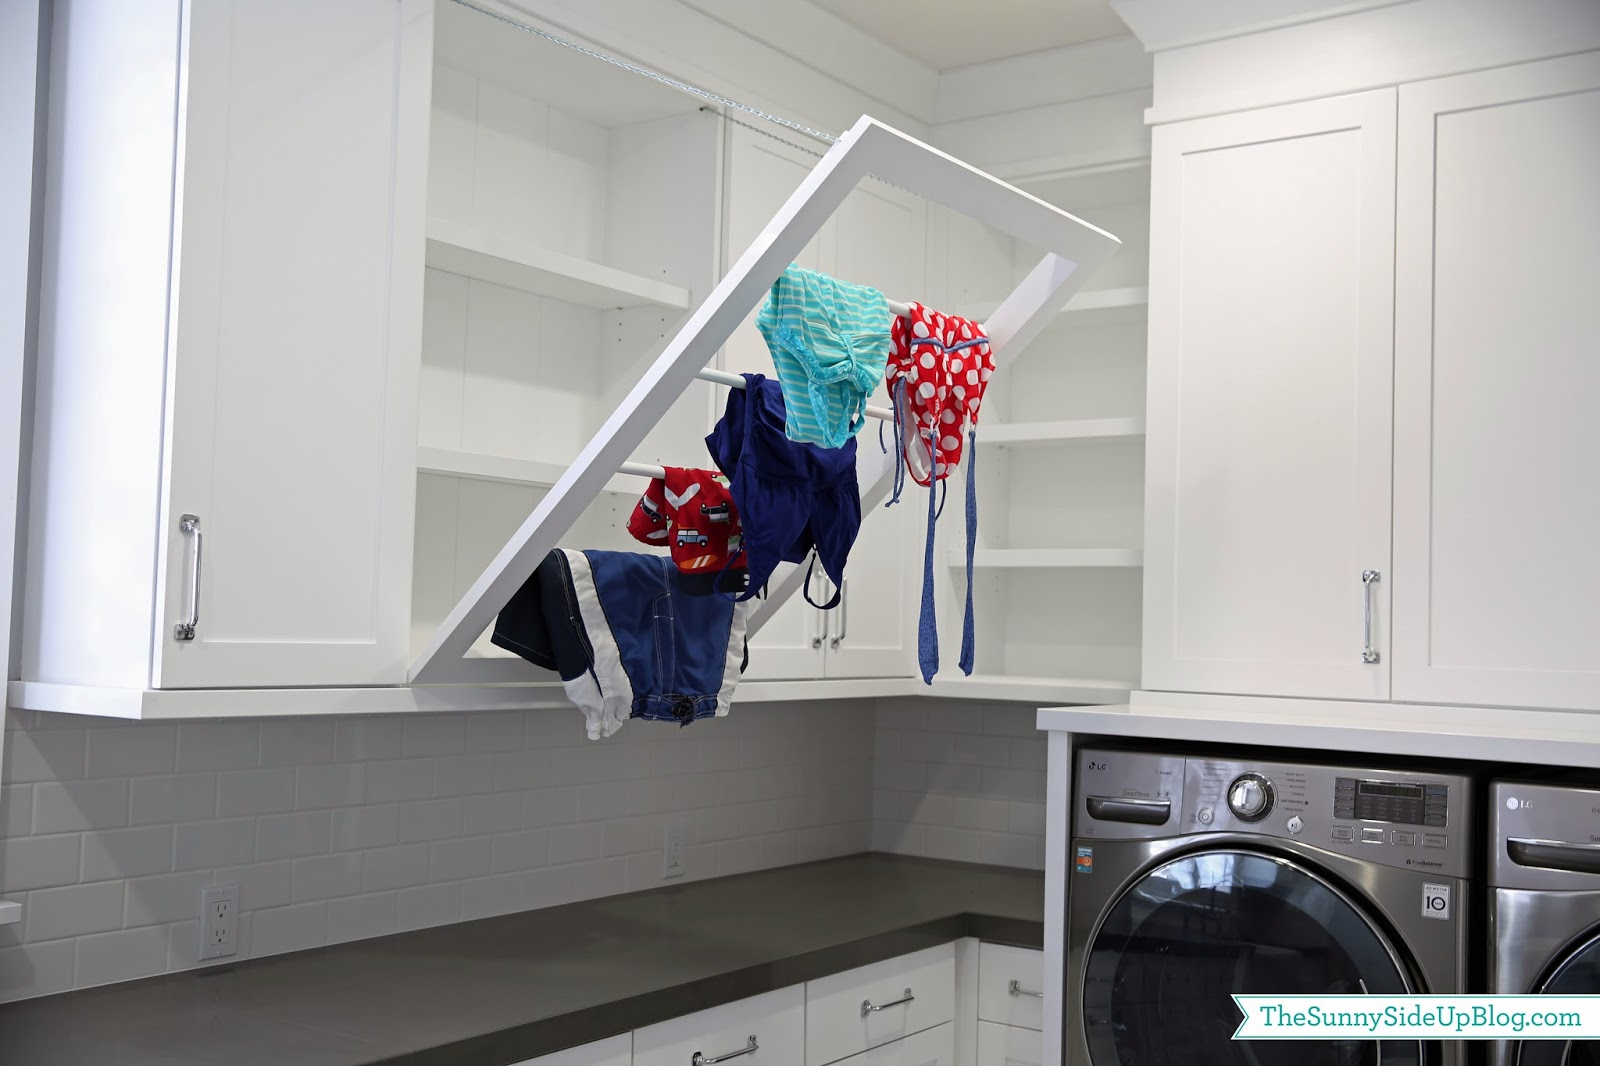 downstairs laundry room the sunny side up blog. Black Bedroom Furniture Sets. Home Design Ideas